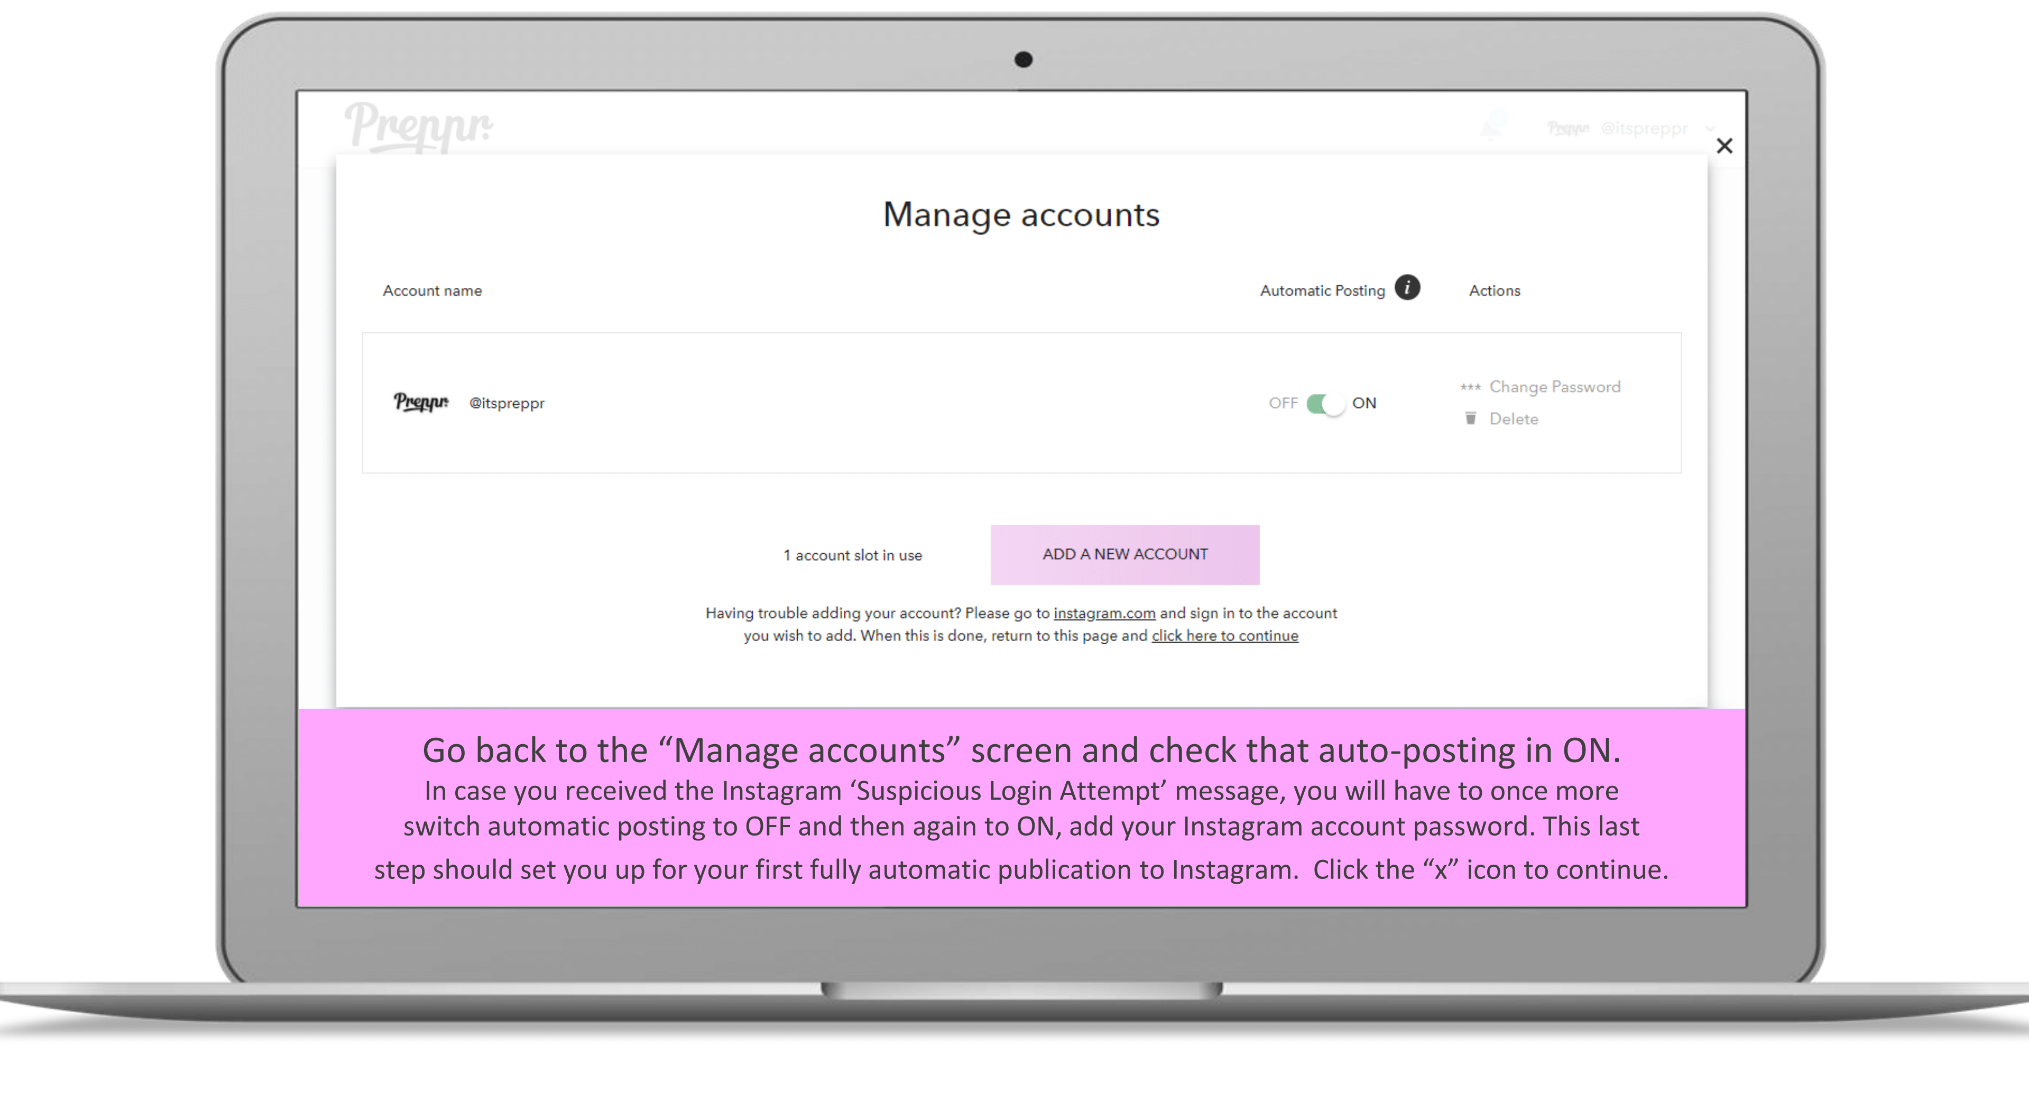 Go back to manage accounts - Preppr